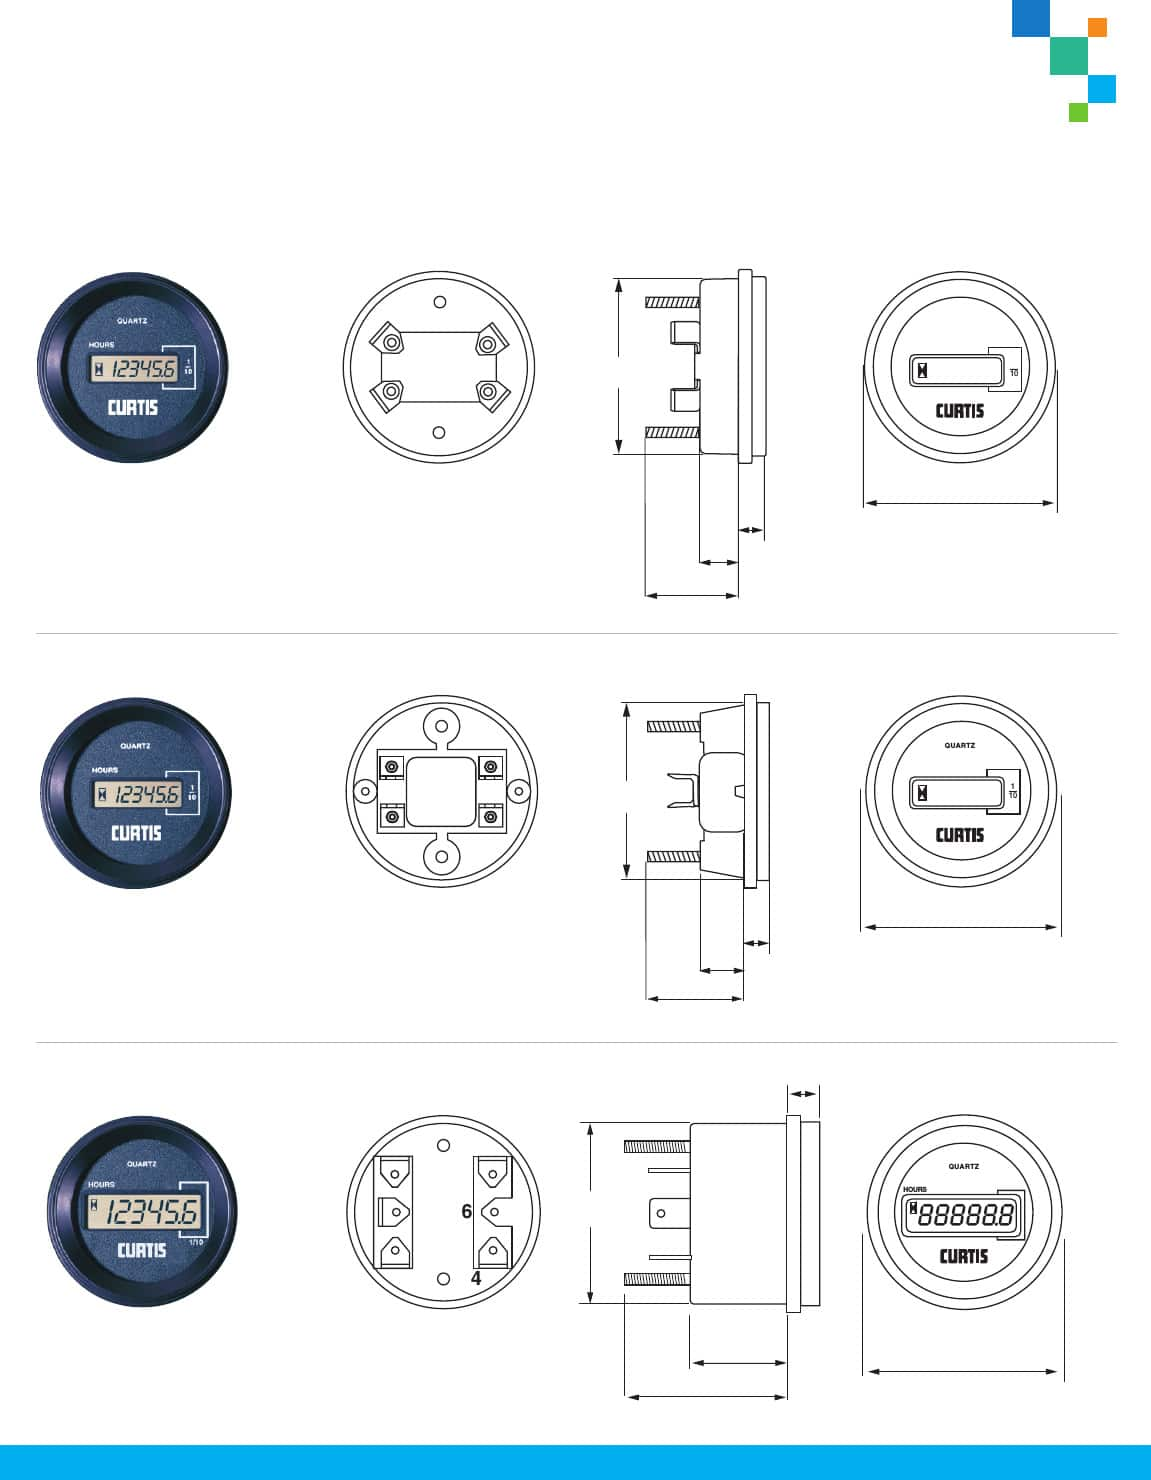 hight resolution of curtis meters wiring diagrams wiring diagram used curtis meters wiring diagrams